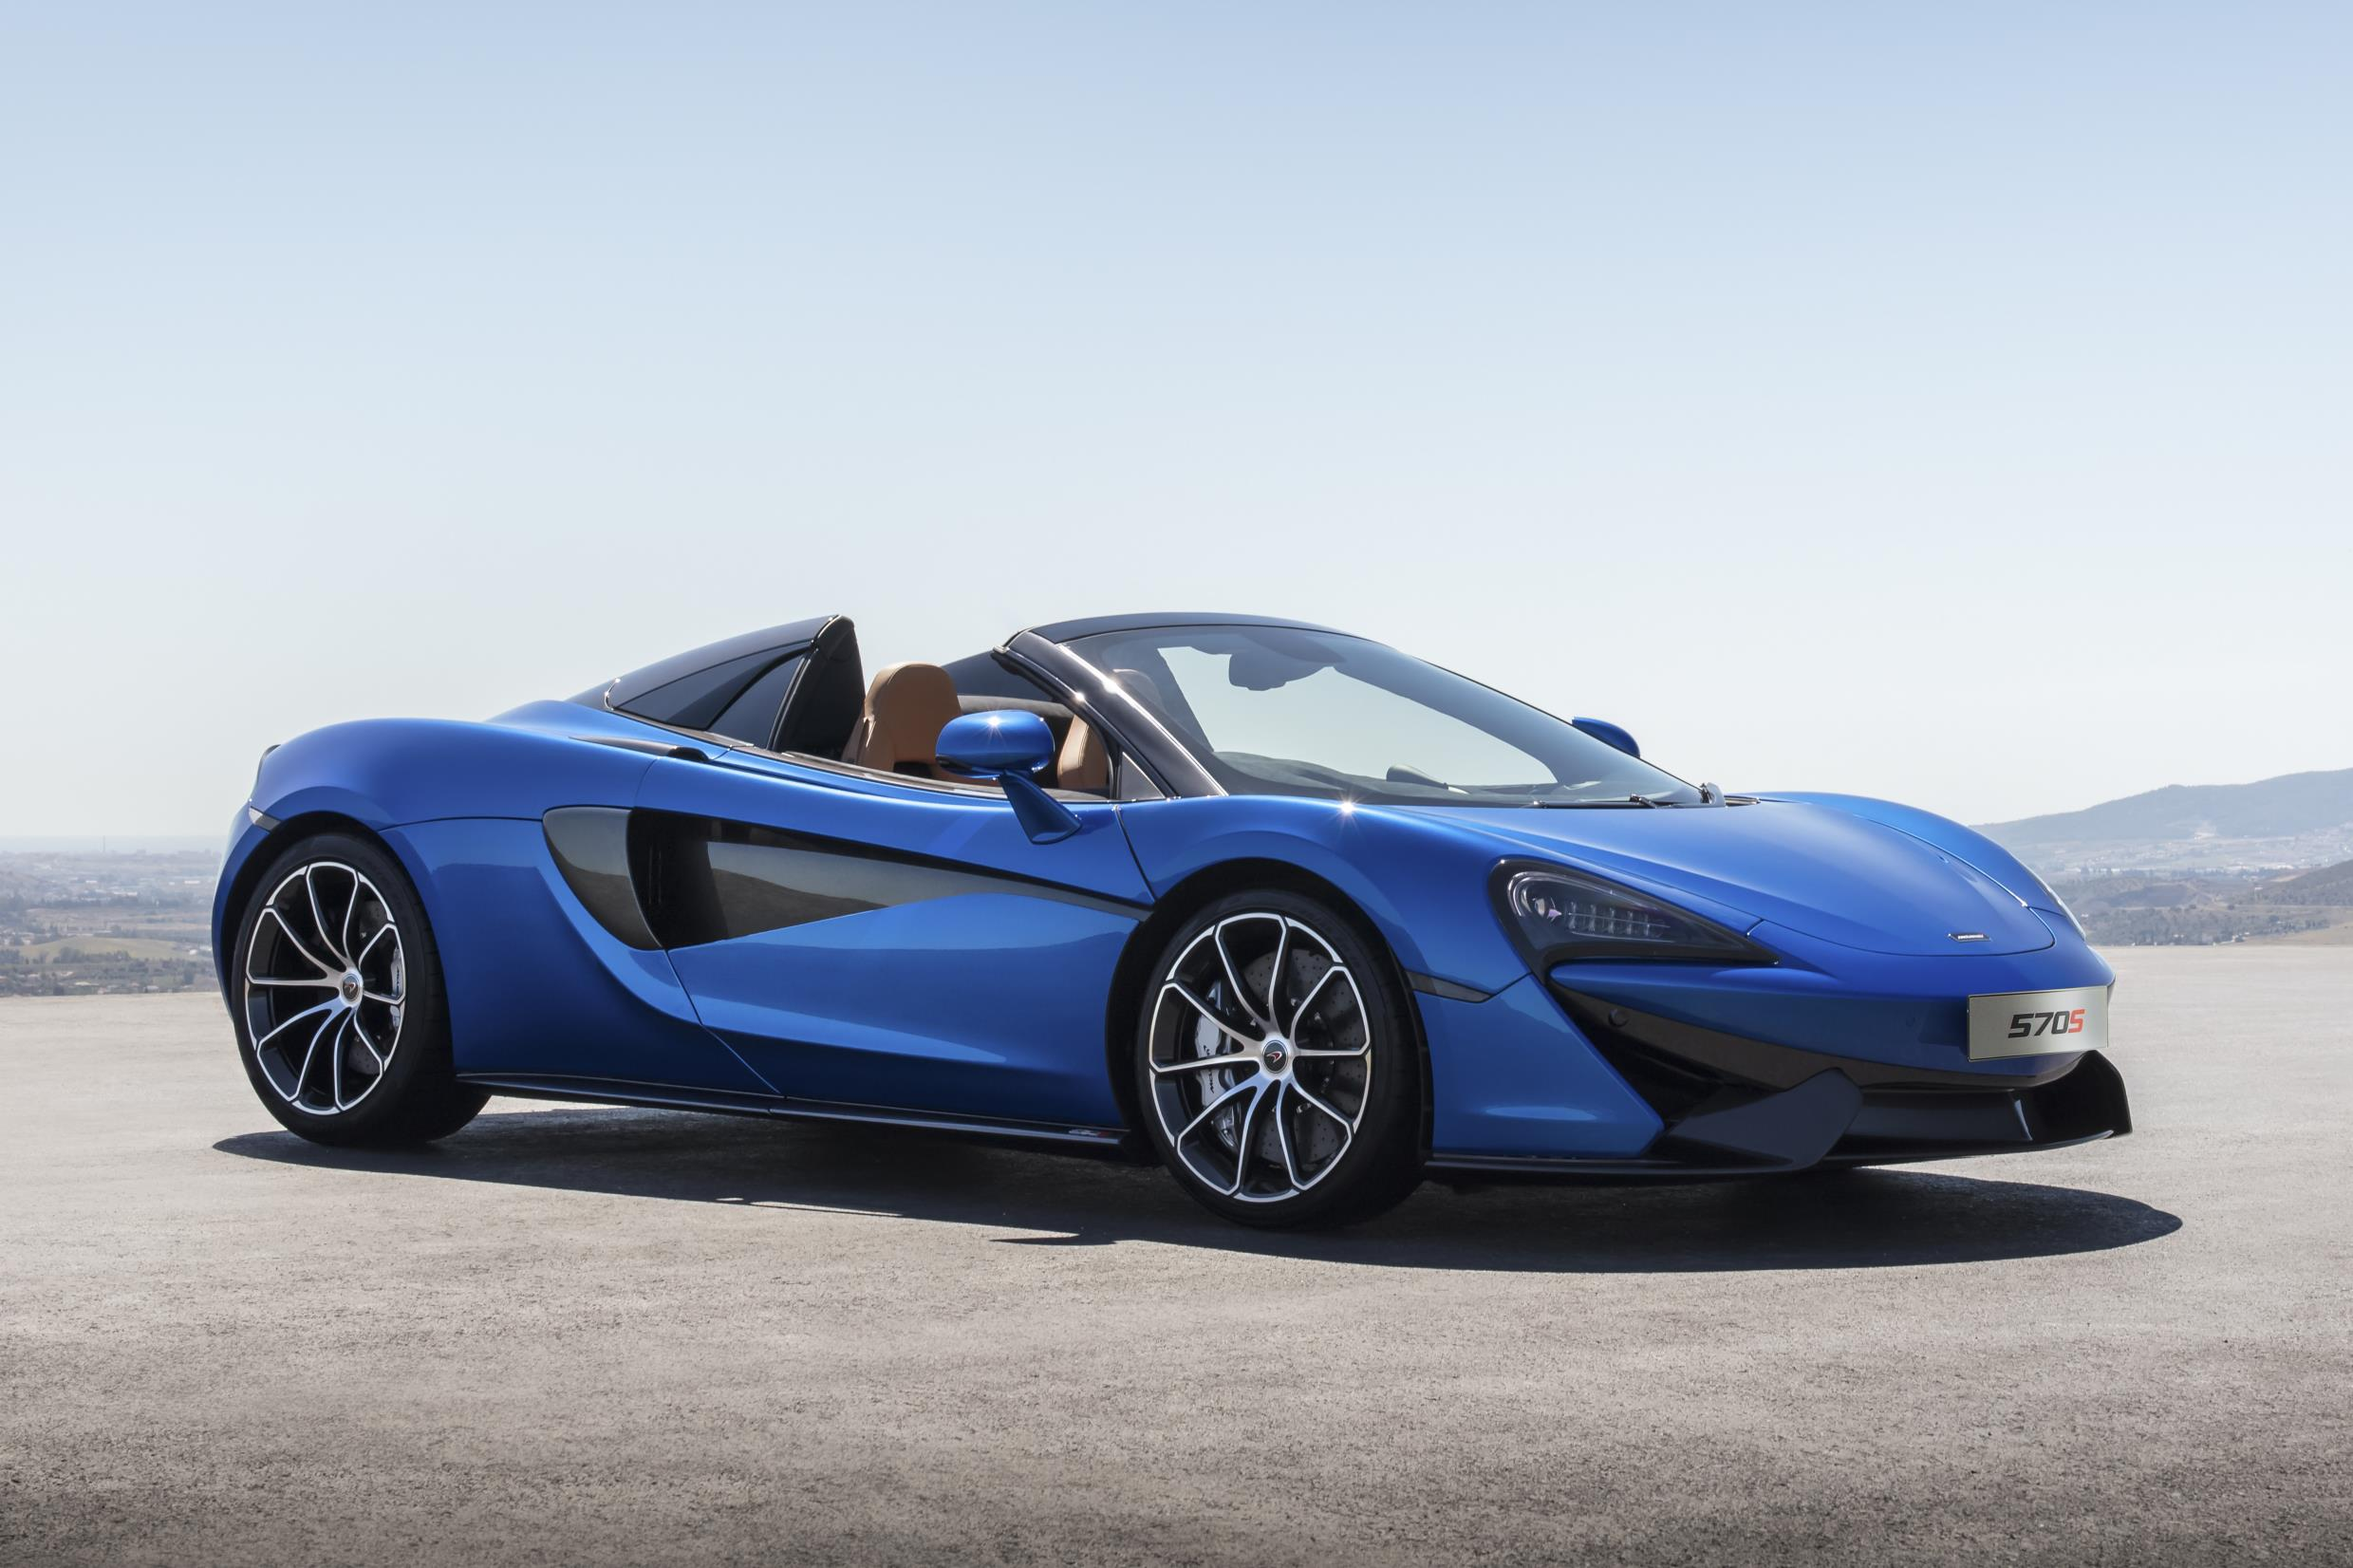 McLaren Goes Topless For Latest 570S Spider Supercar